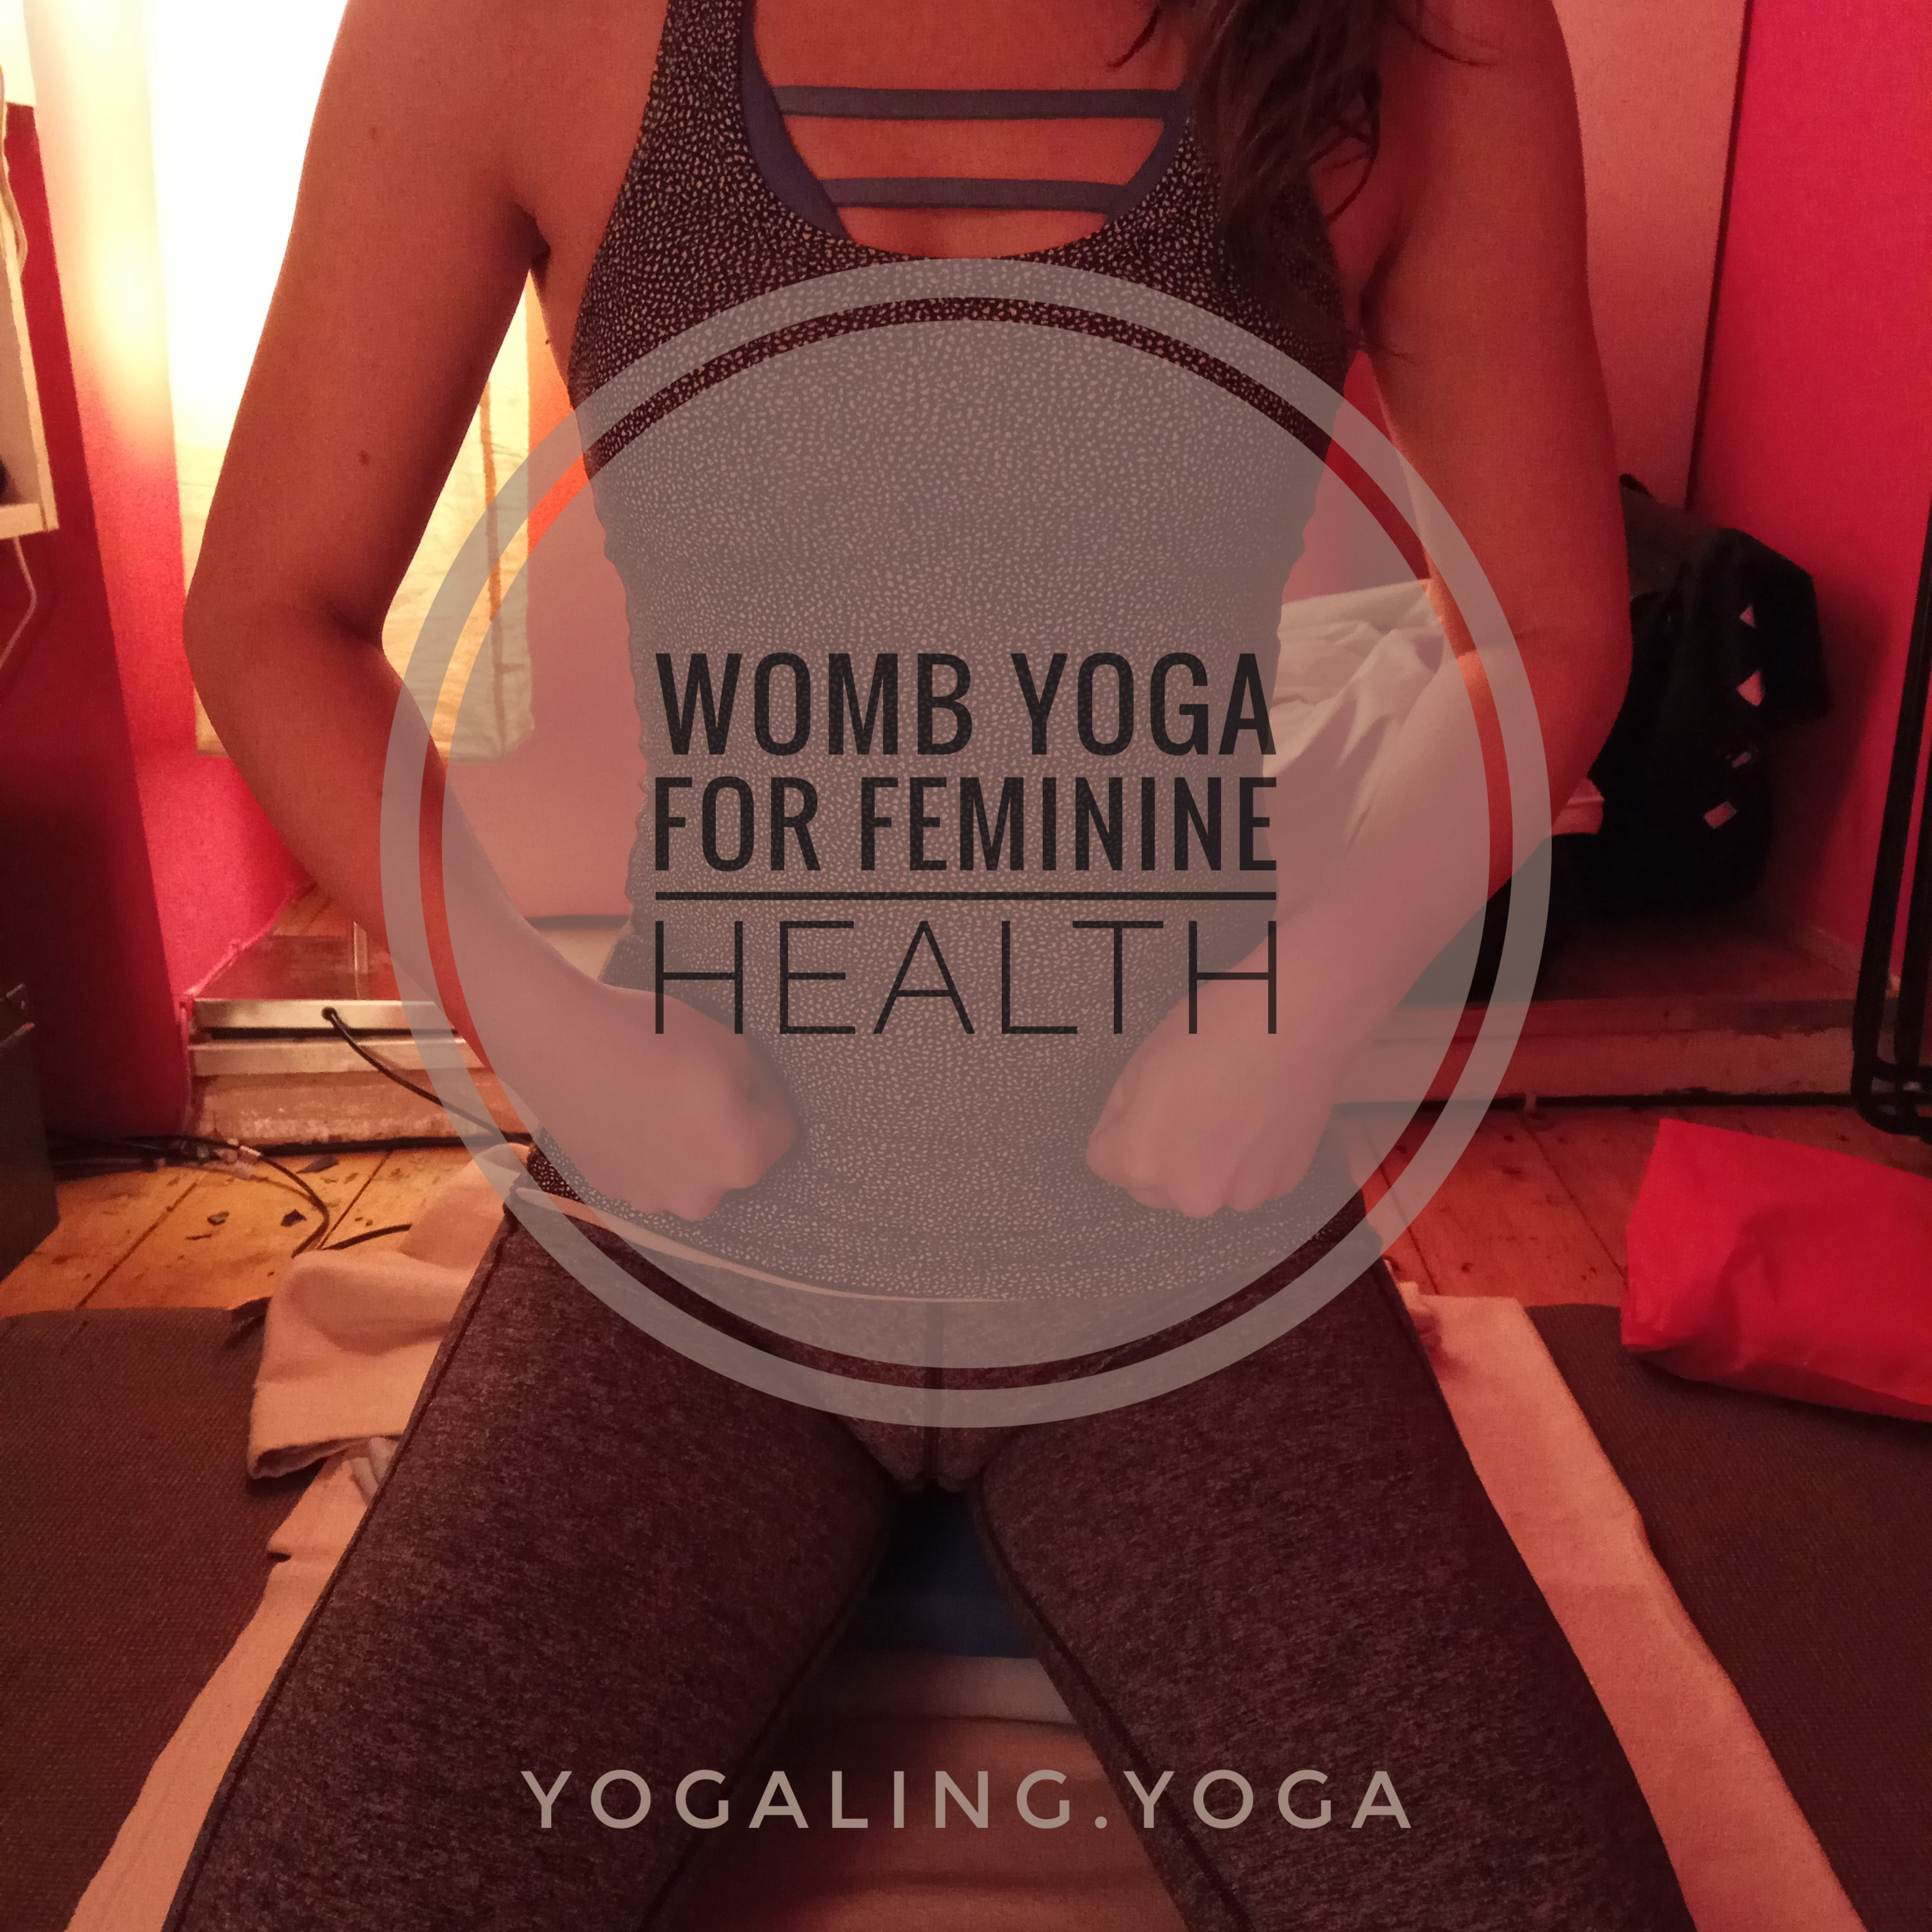 Womb Yoga for Feminine Health